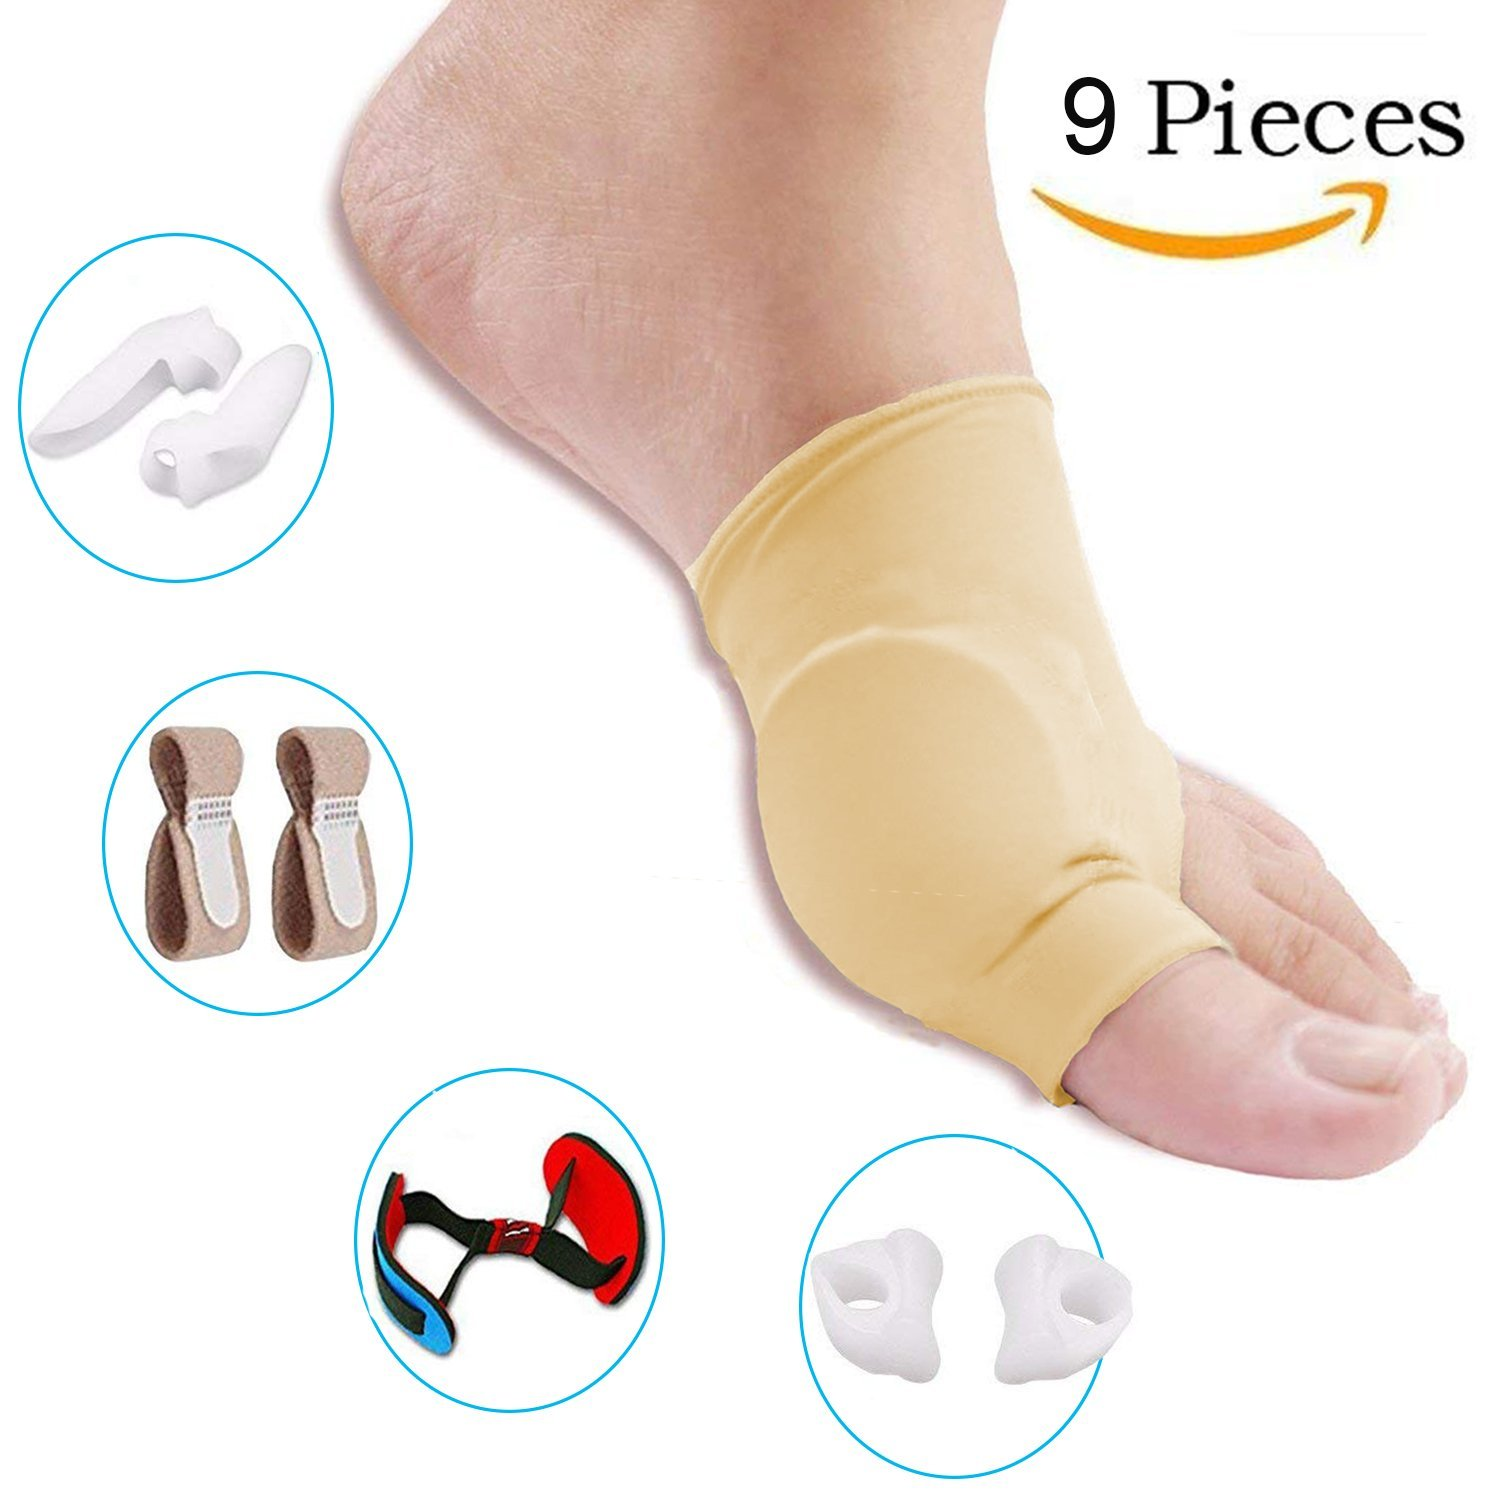 Bunion Corrector and Bunion Care Kit for Tailors Bunion, Hallux Valgus, Big Toe Joint, Hammer Toe, Toe Separators Spacers Straighteners Splint,Toe Straightener, Broken Toe Wraps (Beige)